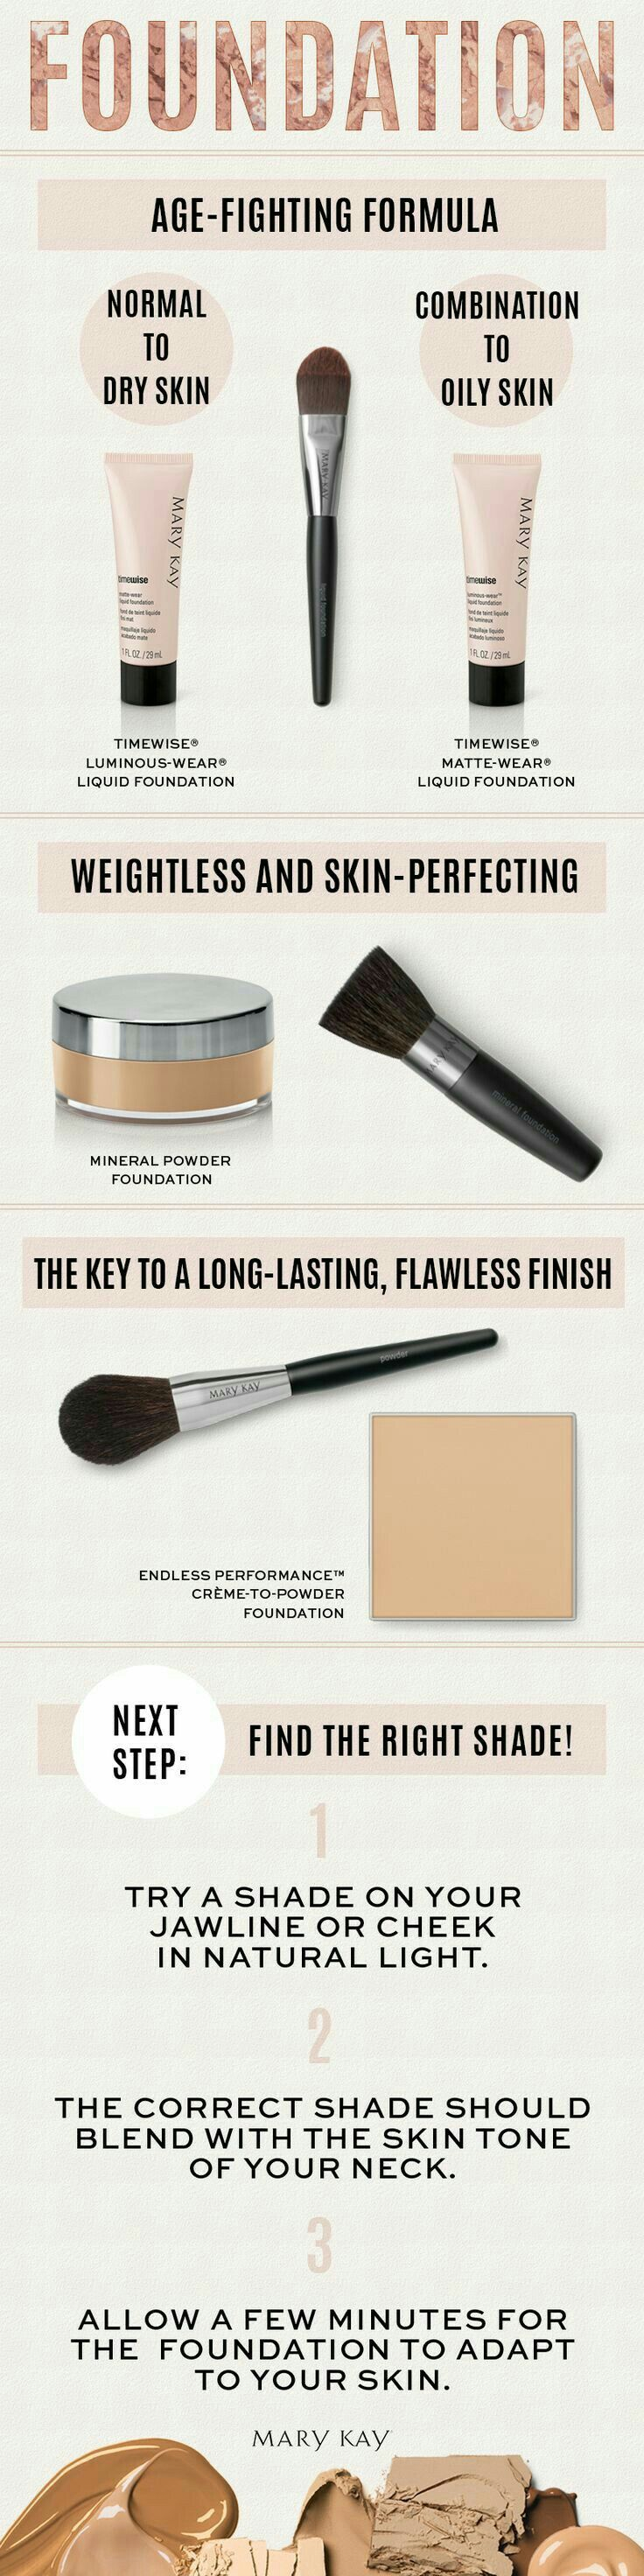 Mary kay online agreement on intouch - A Perfect Look Starts With A Solid Base Let S Find The Perfect Foundation